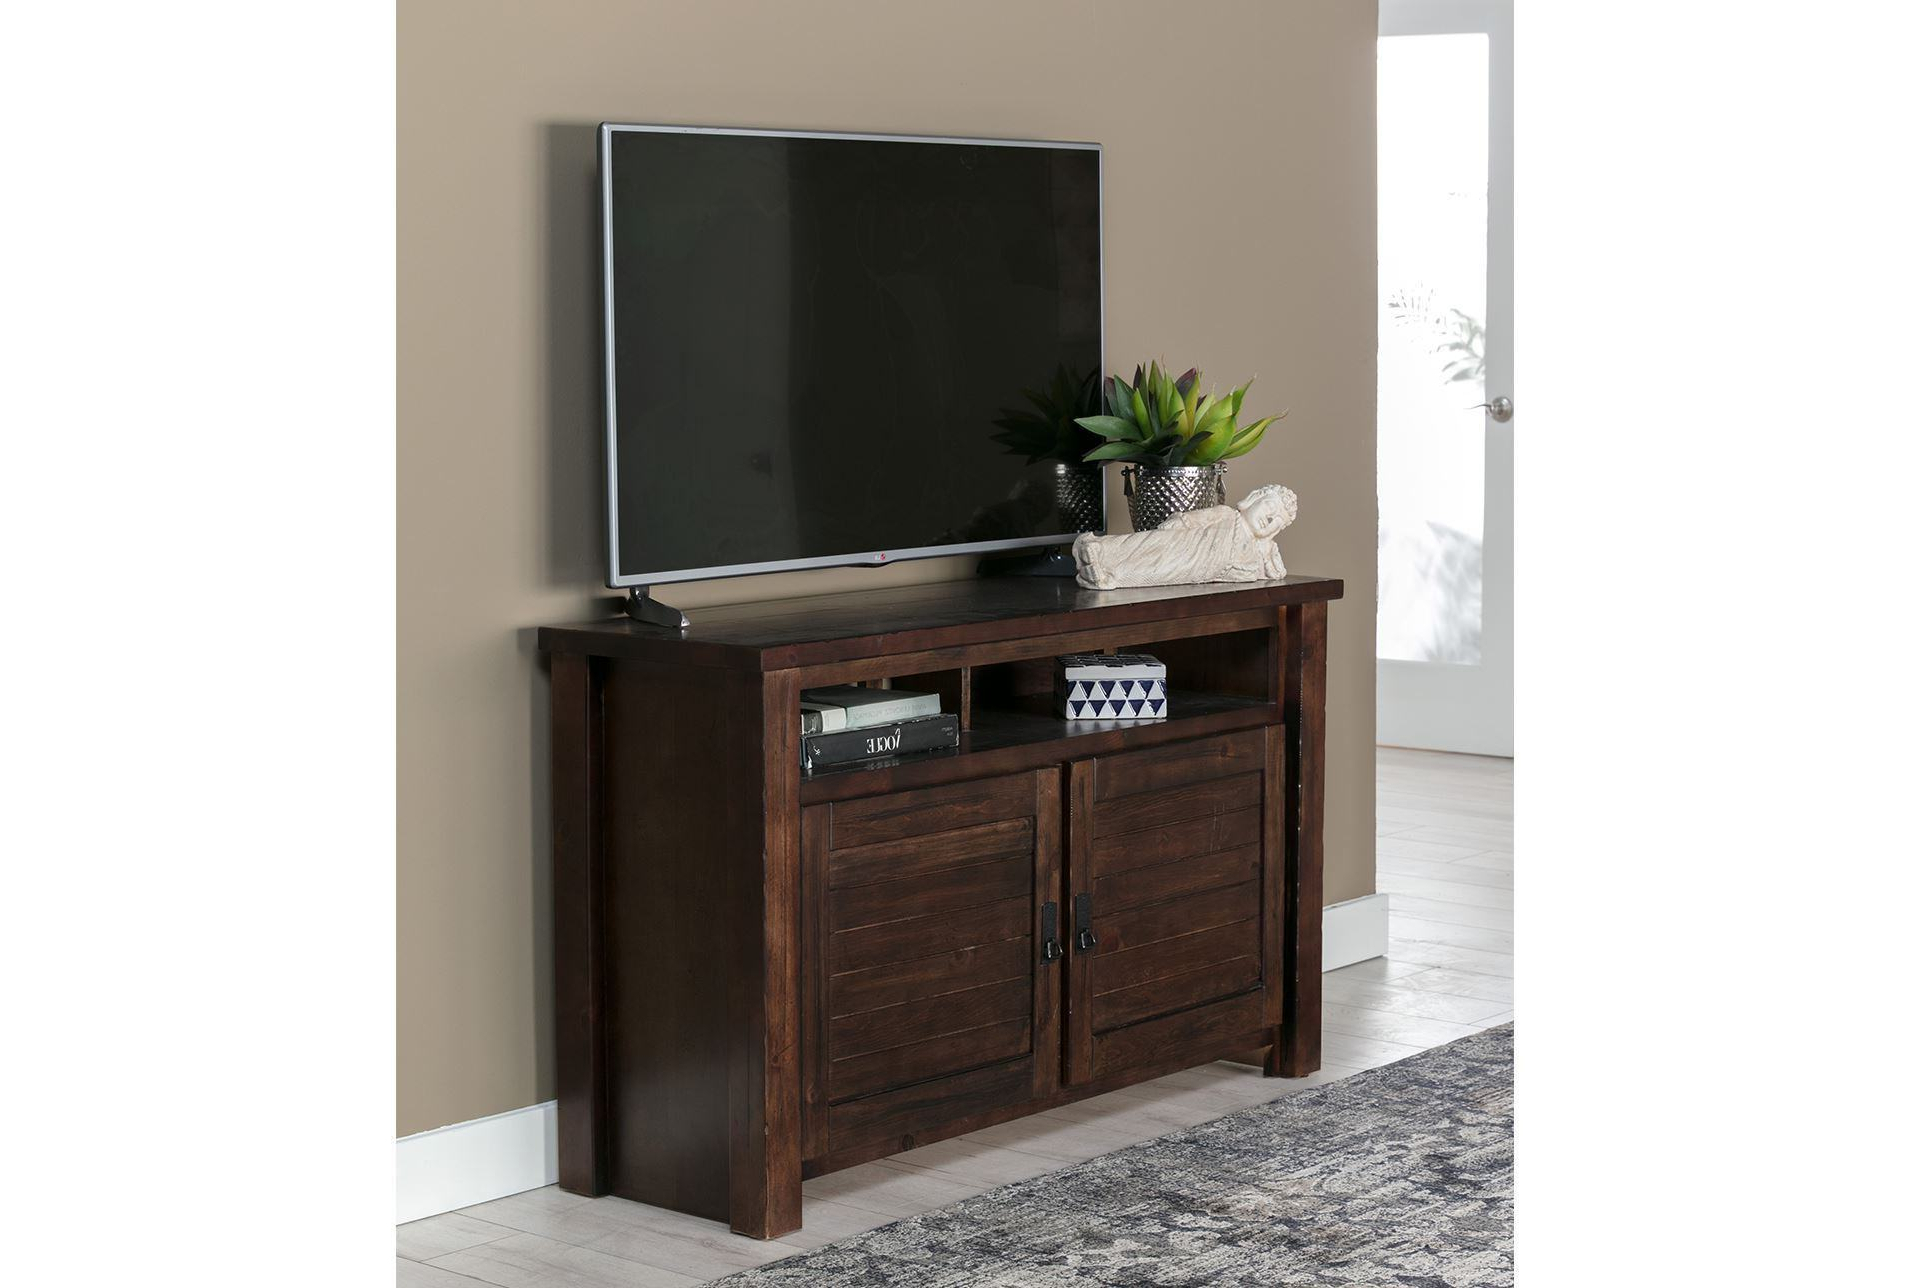 25 Creative 54 Inch Tv Stand Pictures | Cakestandlady Intended For Sinclair Blue 54 Inch Tv Stands (View 12 of 20)